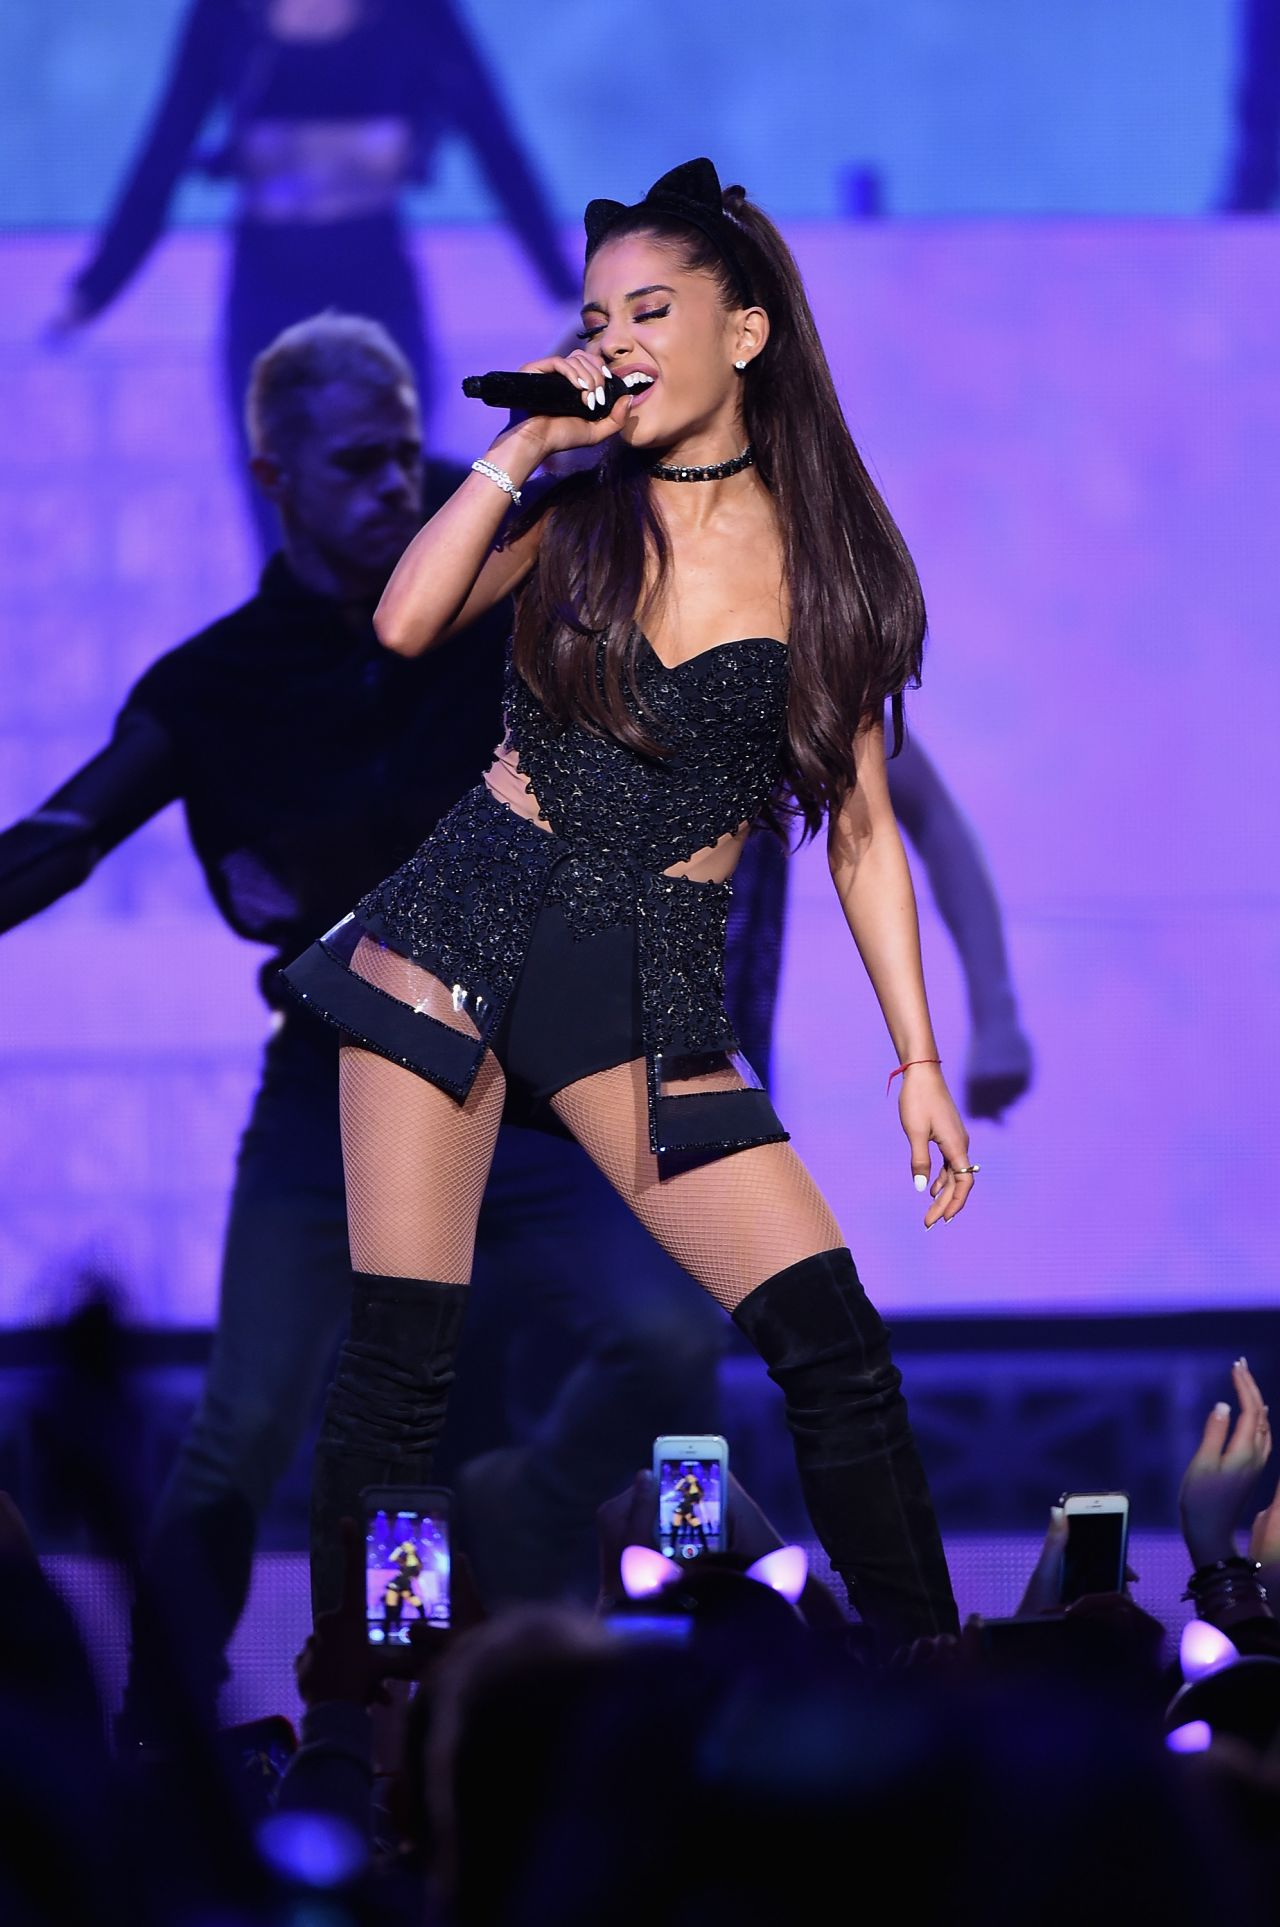 Ariana grande performs at the honeymoon tour madison - Ariana grande concert madison square garden ...